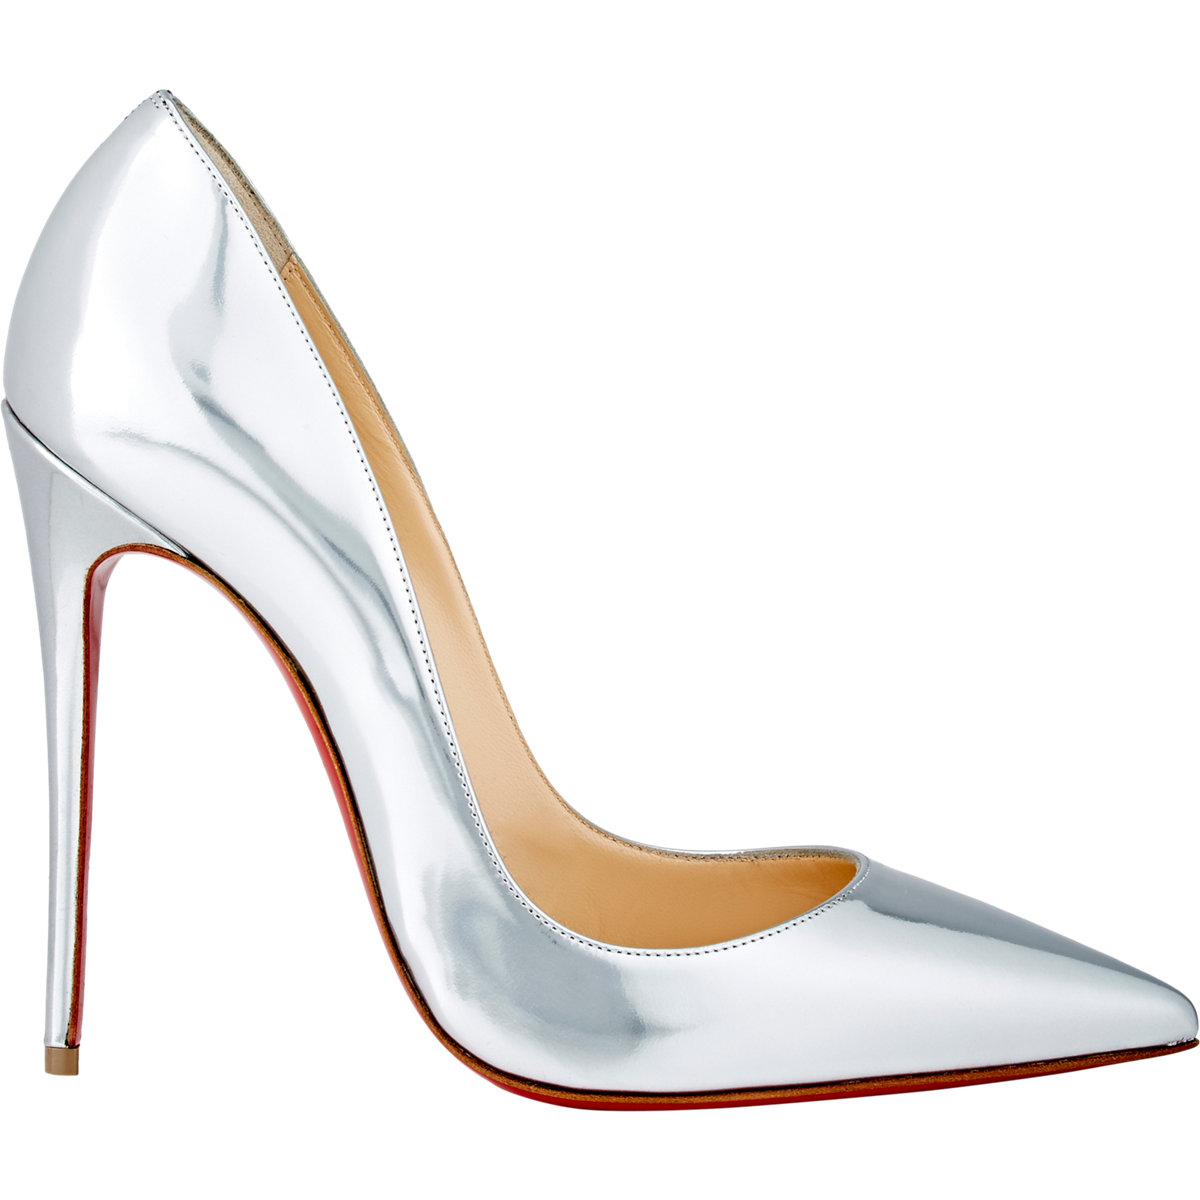 christian louboutin so kate metallic leather pumps in